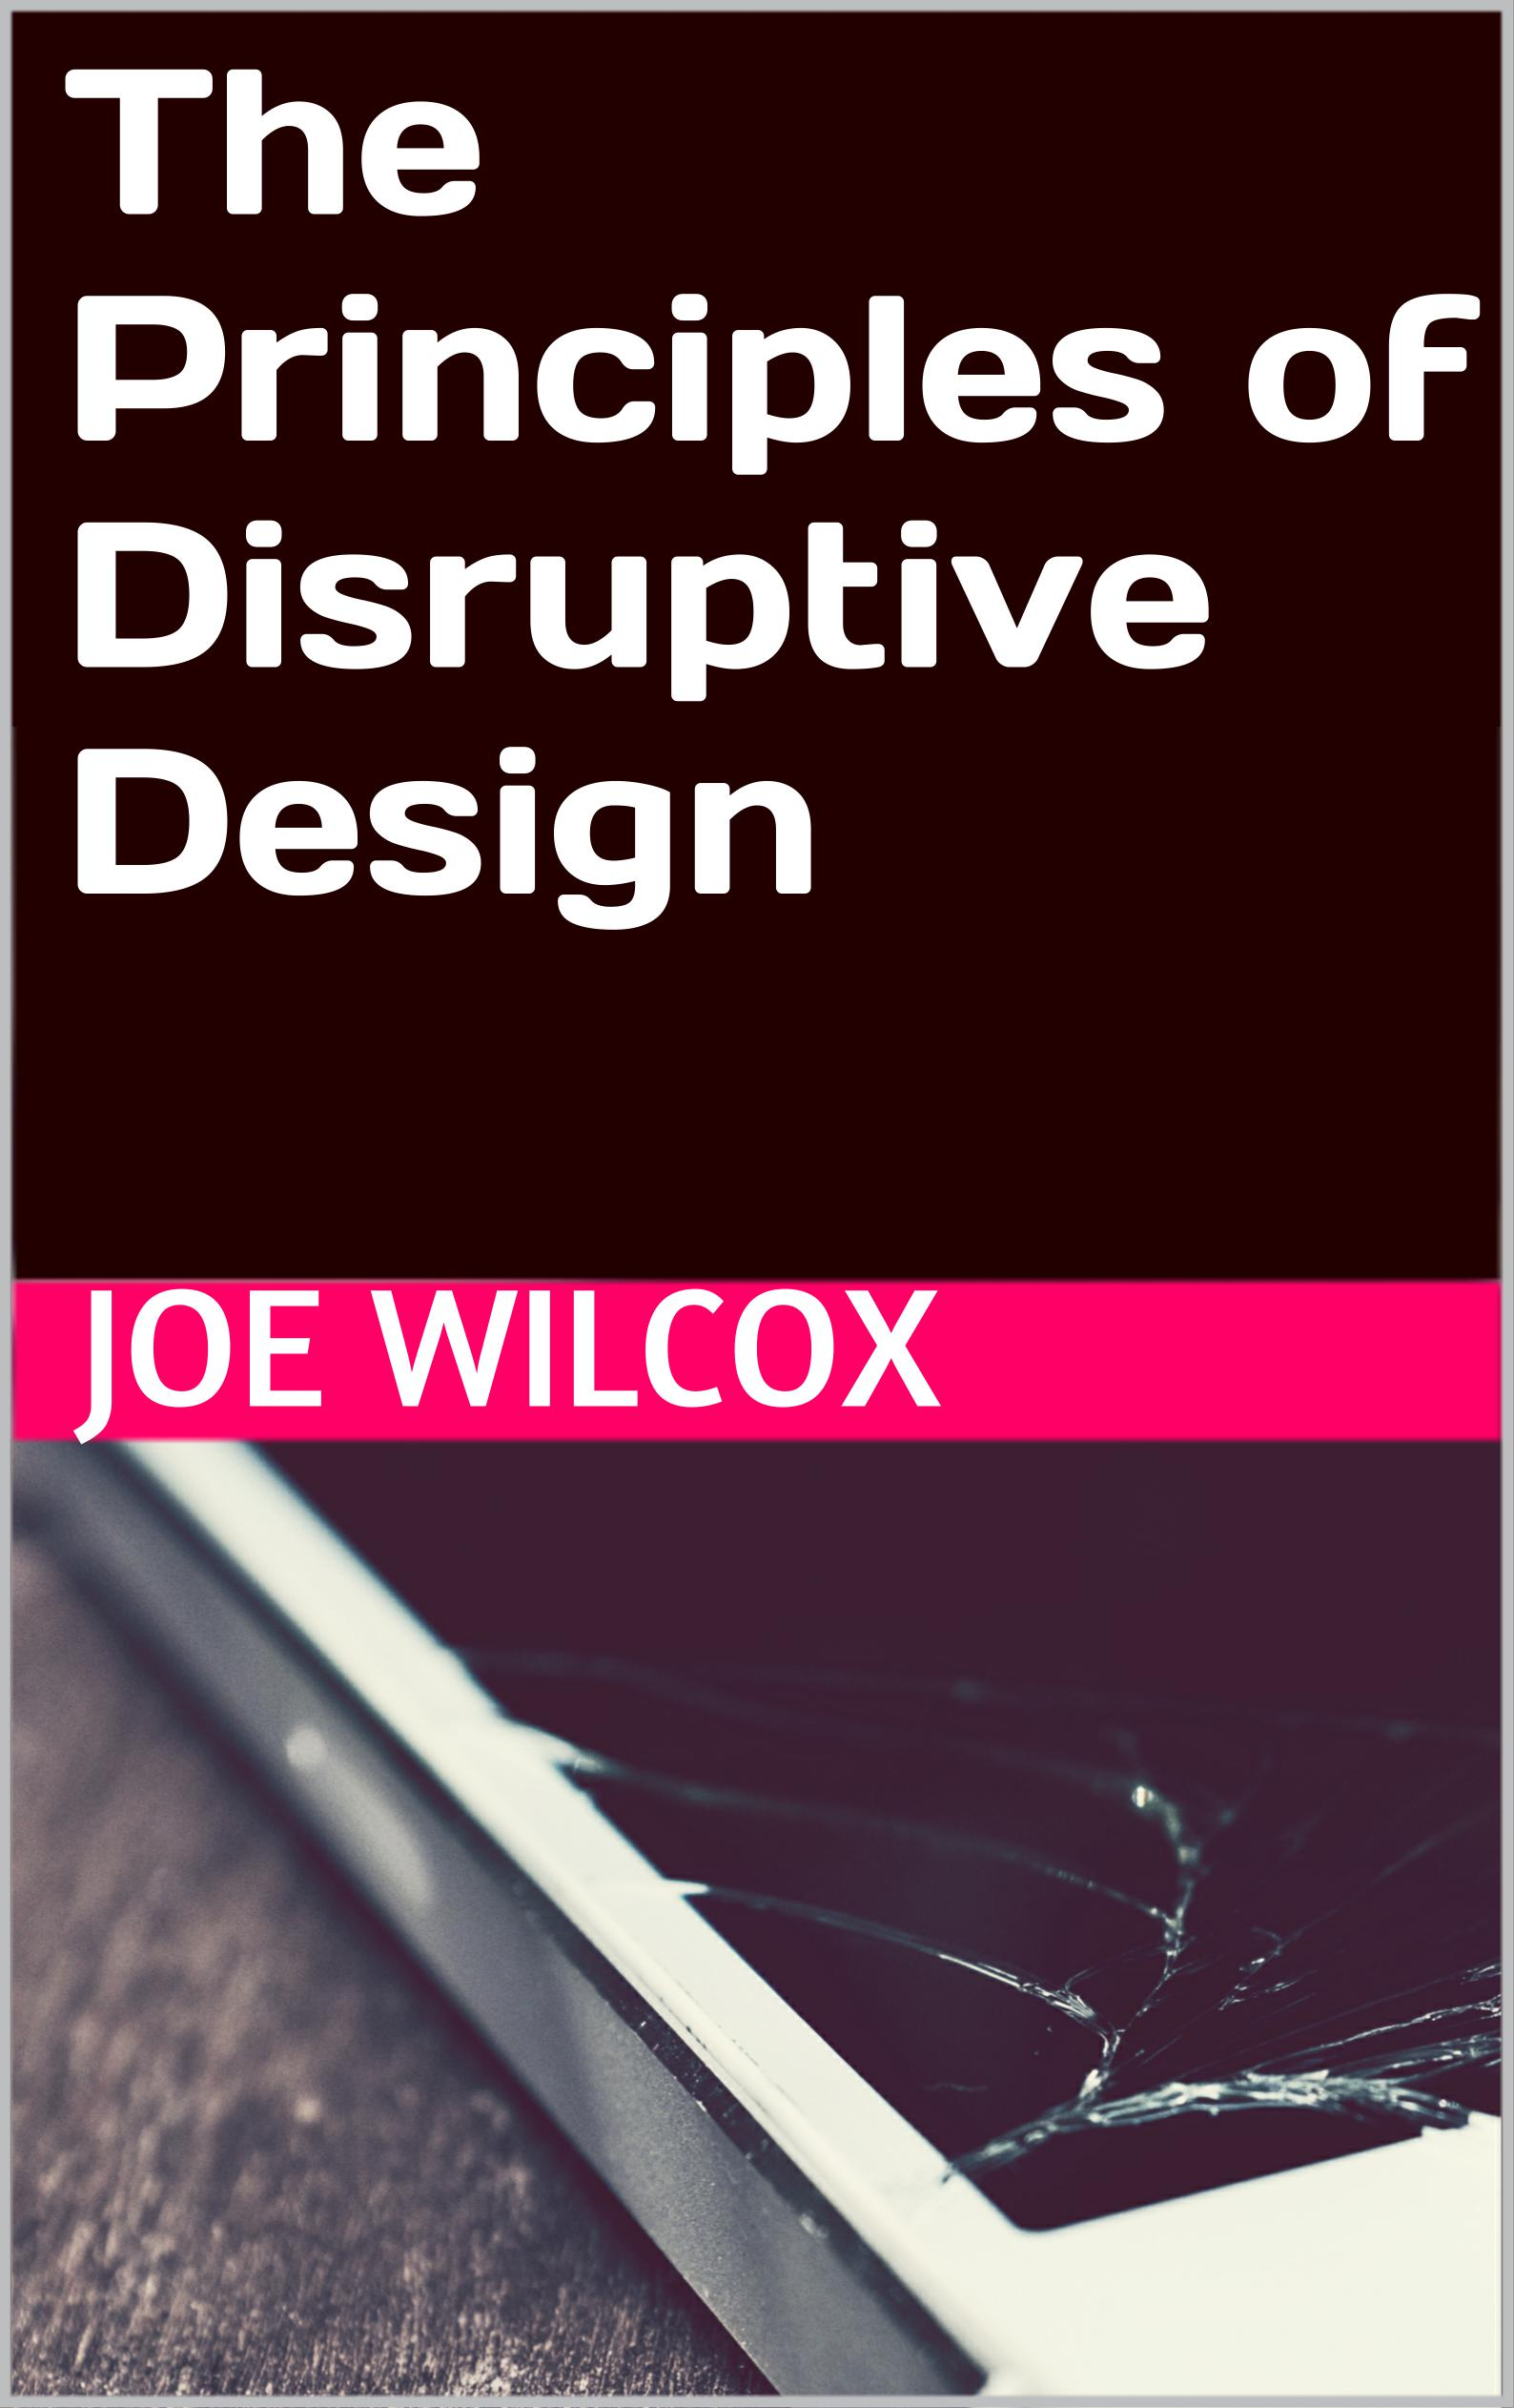 Principles-of-Disruptive-Design